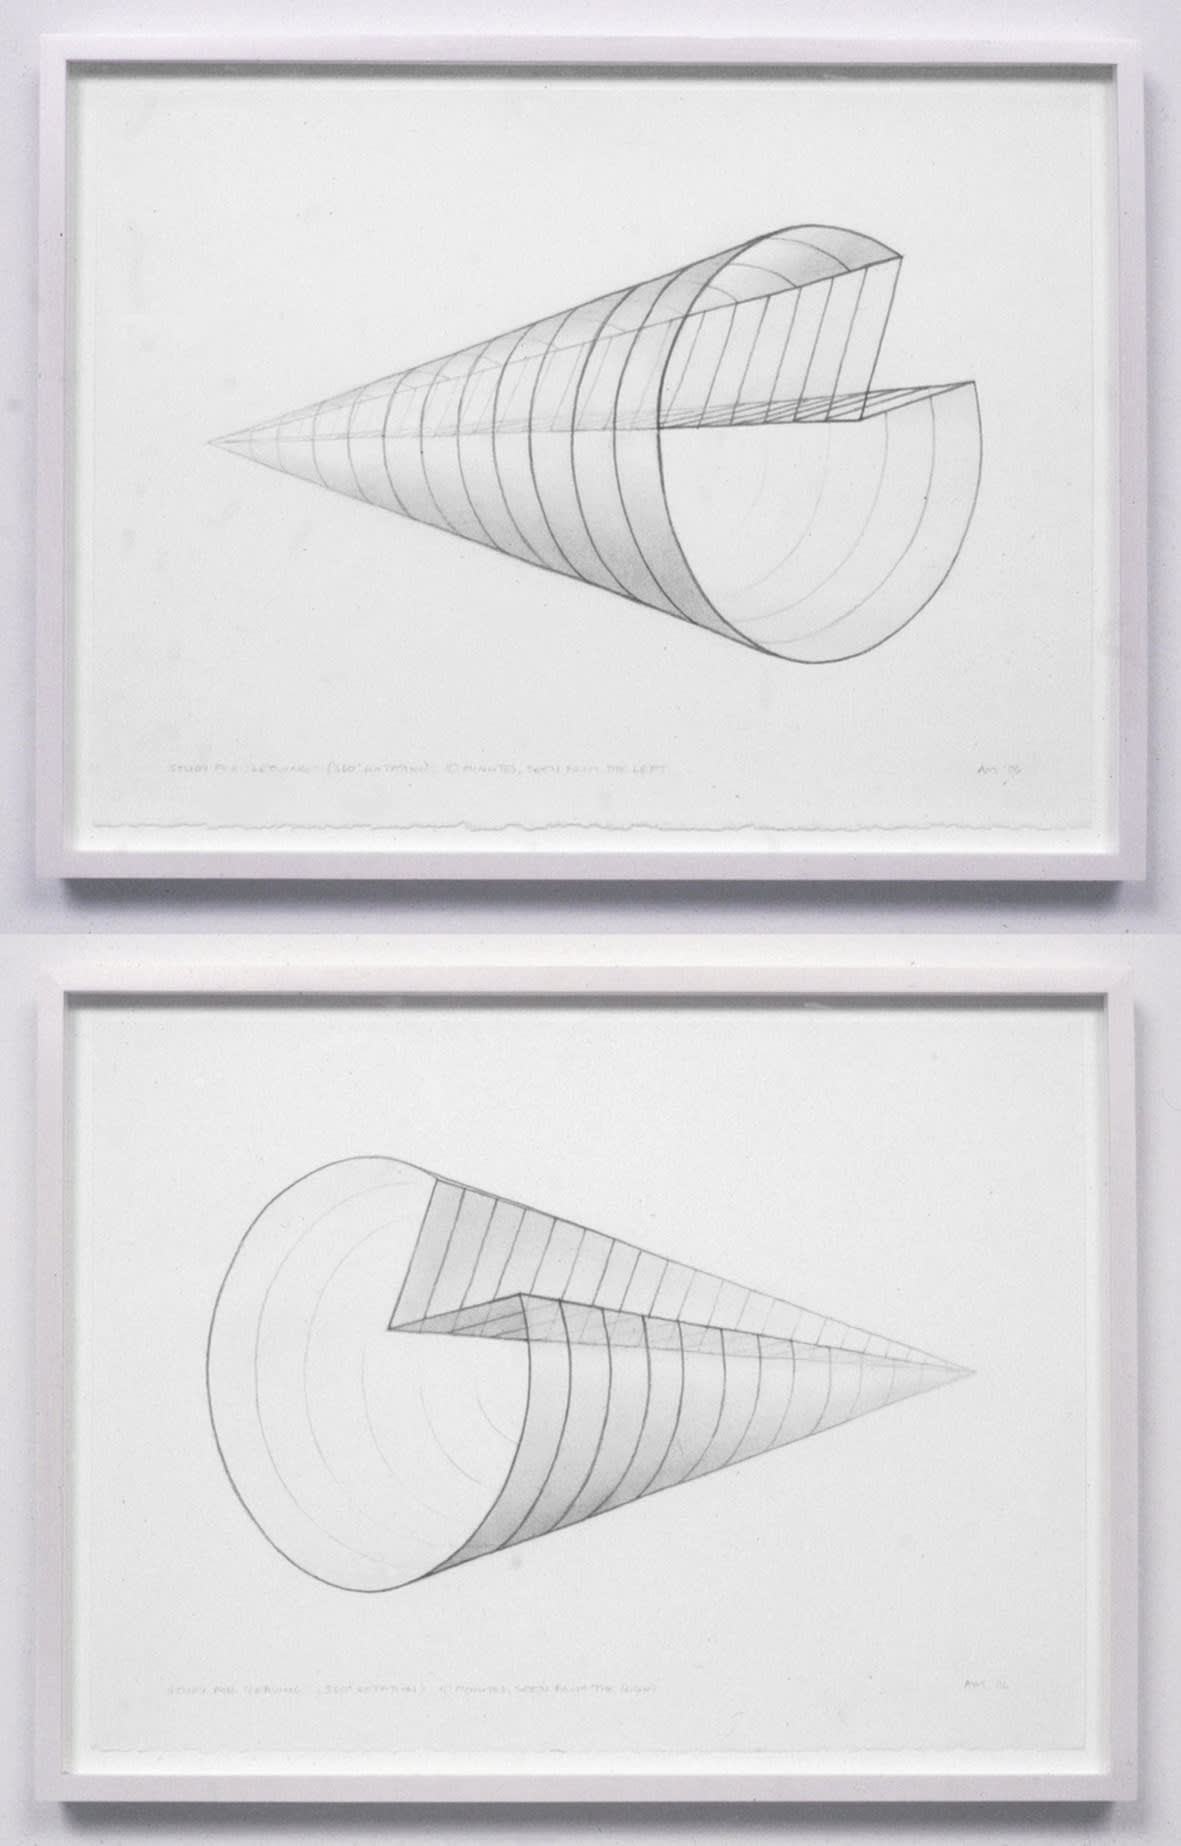 """<span class=""""link fancybox-details-link""""><a href=""""/exhibitions/109/works/artworks4774/"""">View Detail Page</a></span><div class=""""artist""""><strong>Anthony Mccall</strong></div><div class=""""title""""><em>Study for """"Leaving"""" (360º rotation) 10 minutes seen from left and right</em>, 2006</div><div class=""""signed_and_dated"""">titled, signed and dated, recto</div><div class=""""medium"""">pair of pencil drawings on paper</div><div class=""""dimensions"""">paper: 12 1/2 x 17 inches (31.8 x 43.2 cm) each<br>framed: 14 1/8 x 18 1/8 inches (35.9 x 46 cm) each</div>"""